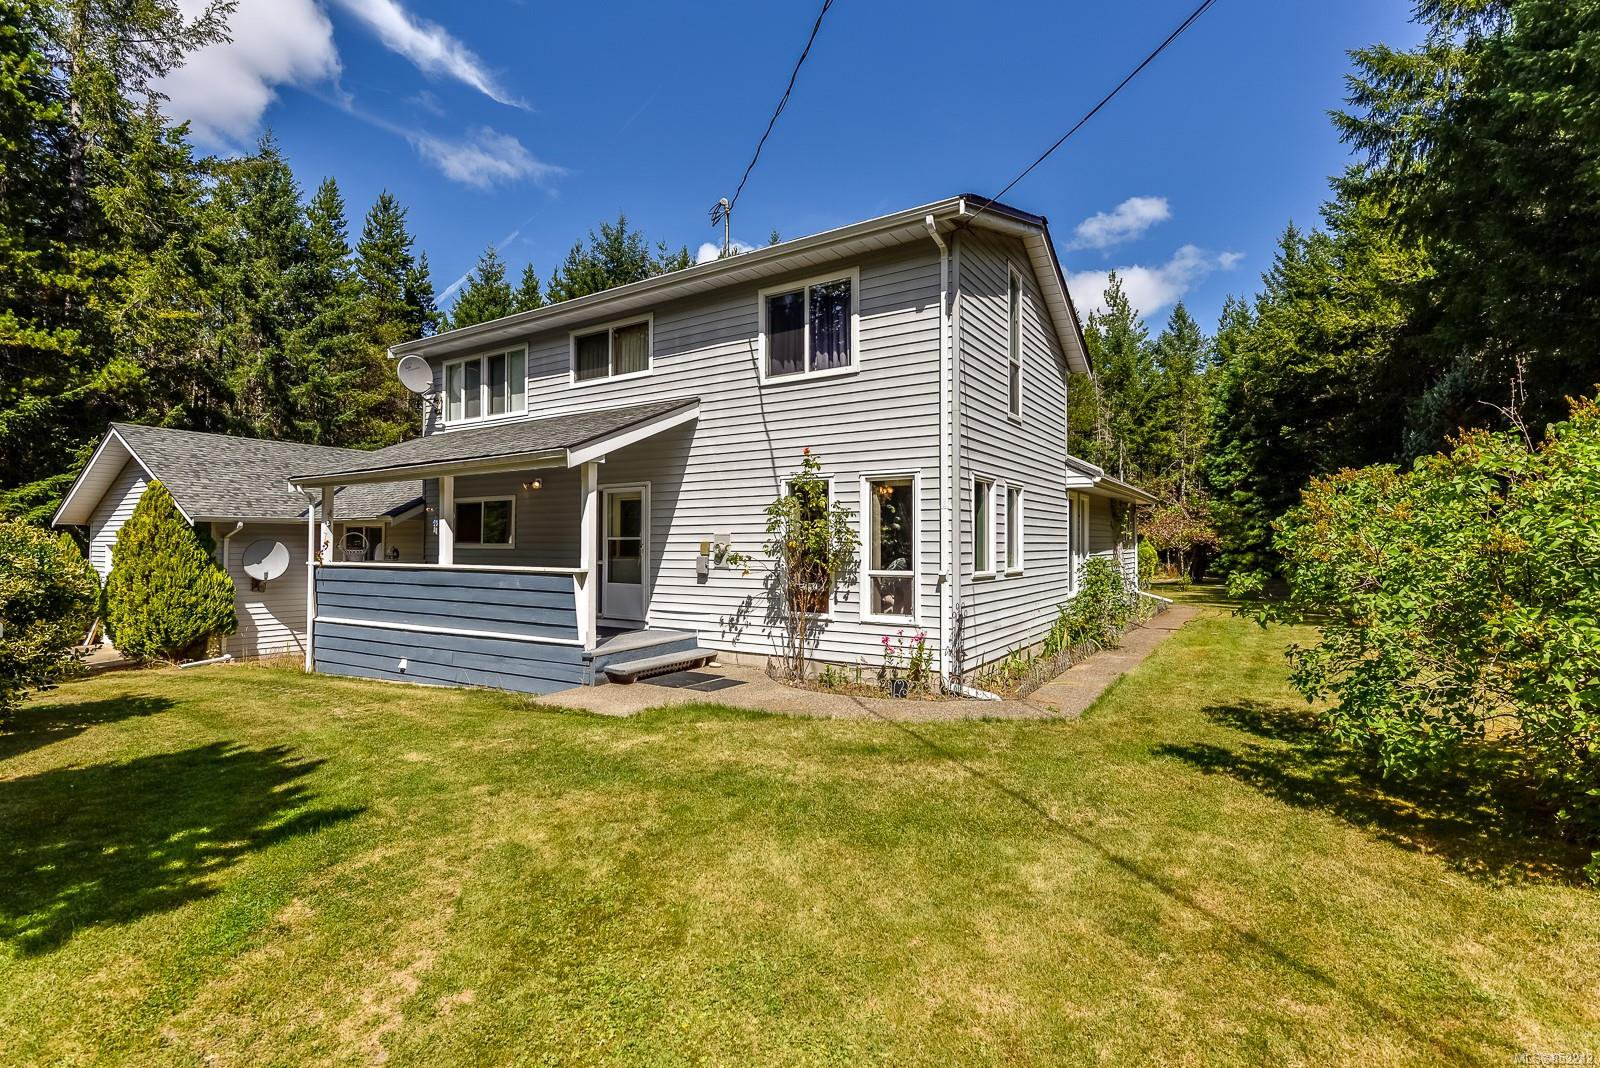 Main Photo: 4735 Anderson Ave in : PQ Bowser/Deep Bay House for sale (Parksville/Qualicum)  : MLS®# 852212